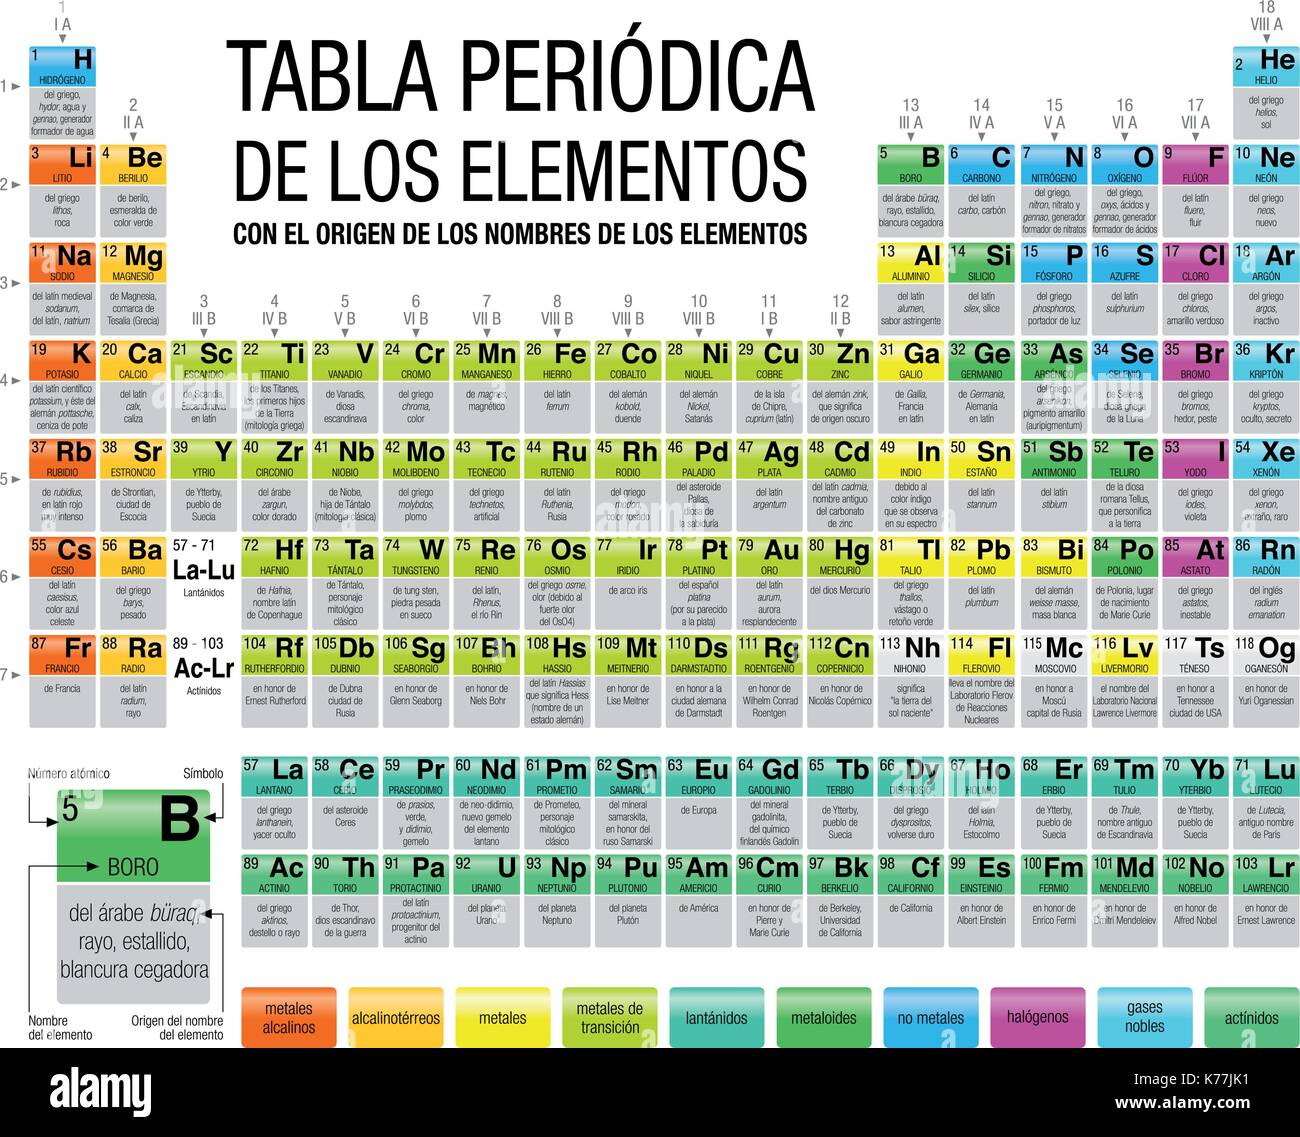 Tabla peridica de los elementos con el origen de los nombres de los tabla peridica de los elementos con el origen de los nombres de los elementos periodic table of elements with the origin of the names of the element urtaz Choice Image